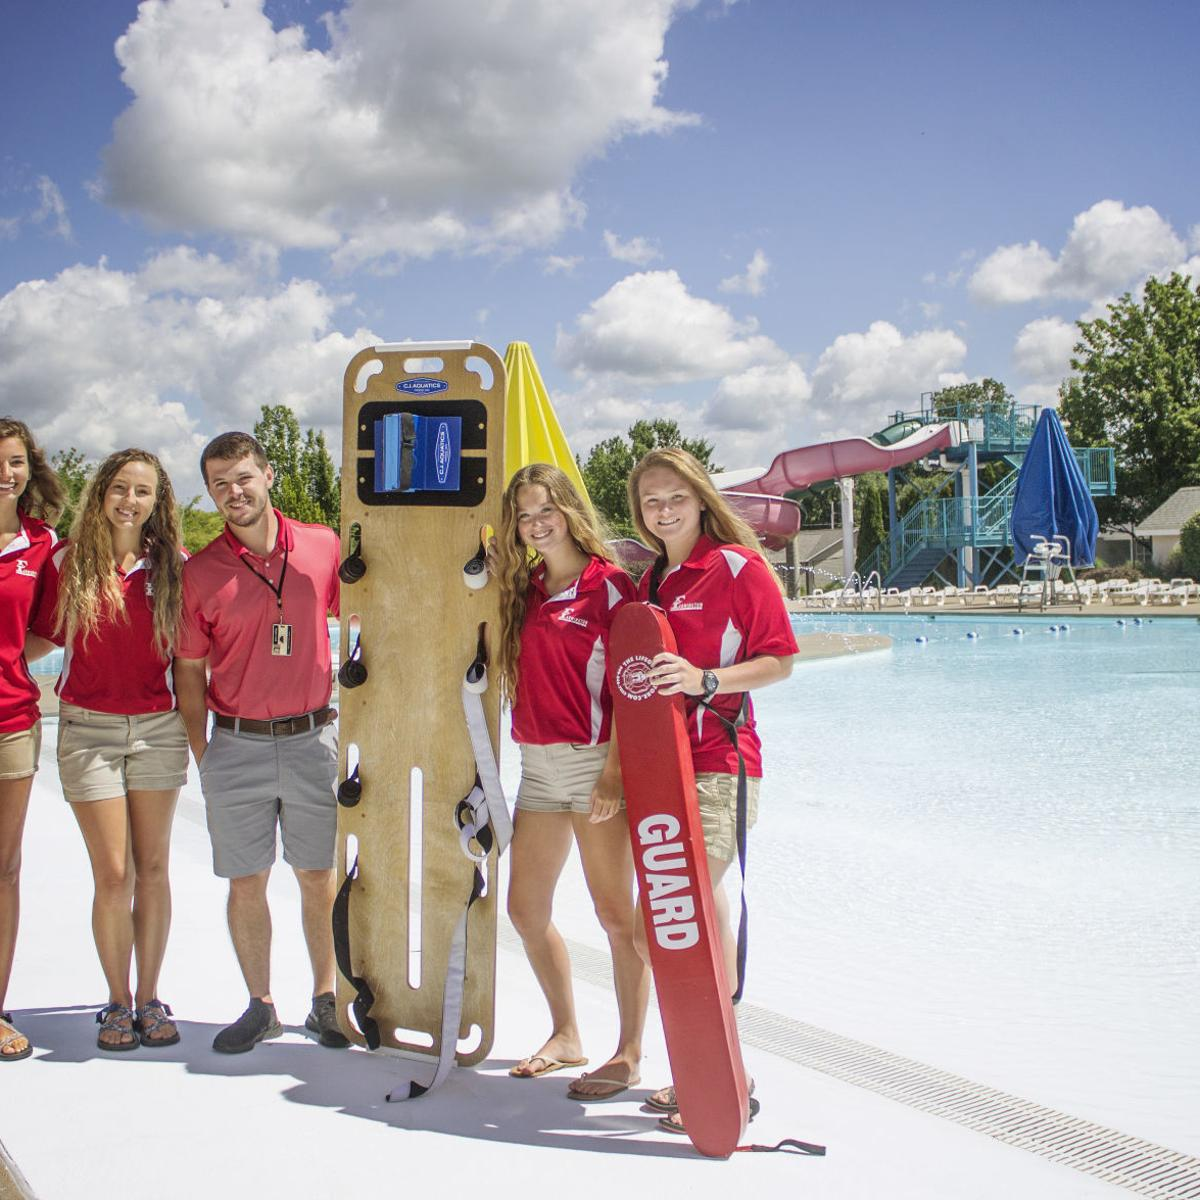 Behind The Scenes At The Water Park Local News Dailyjournalonline Com